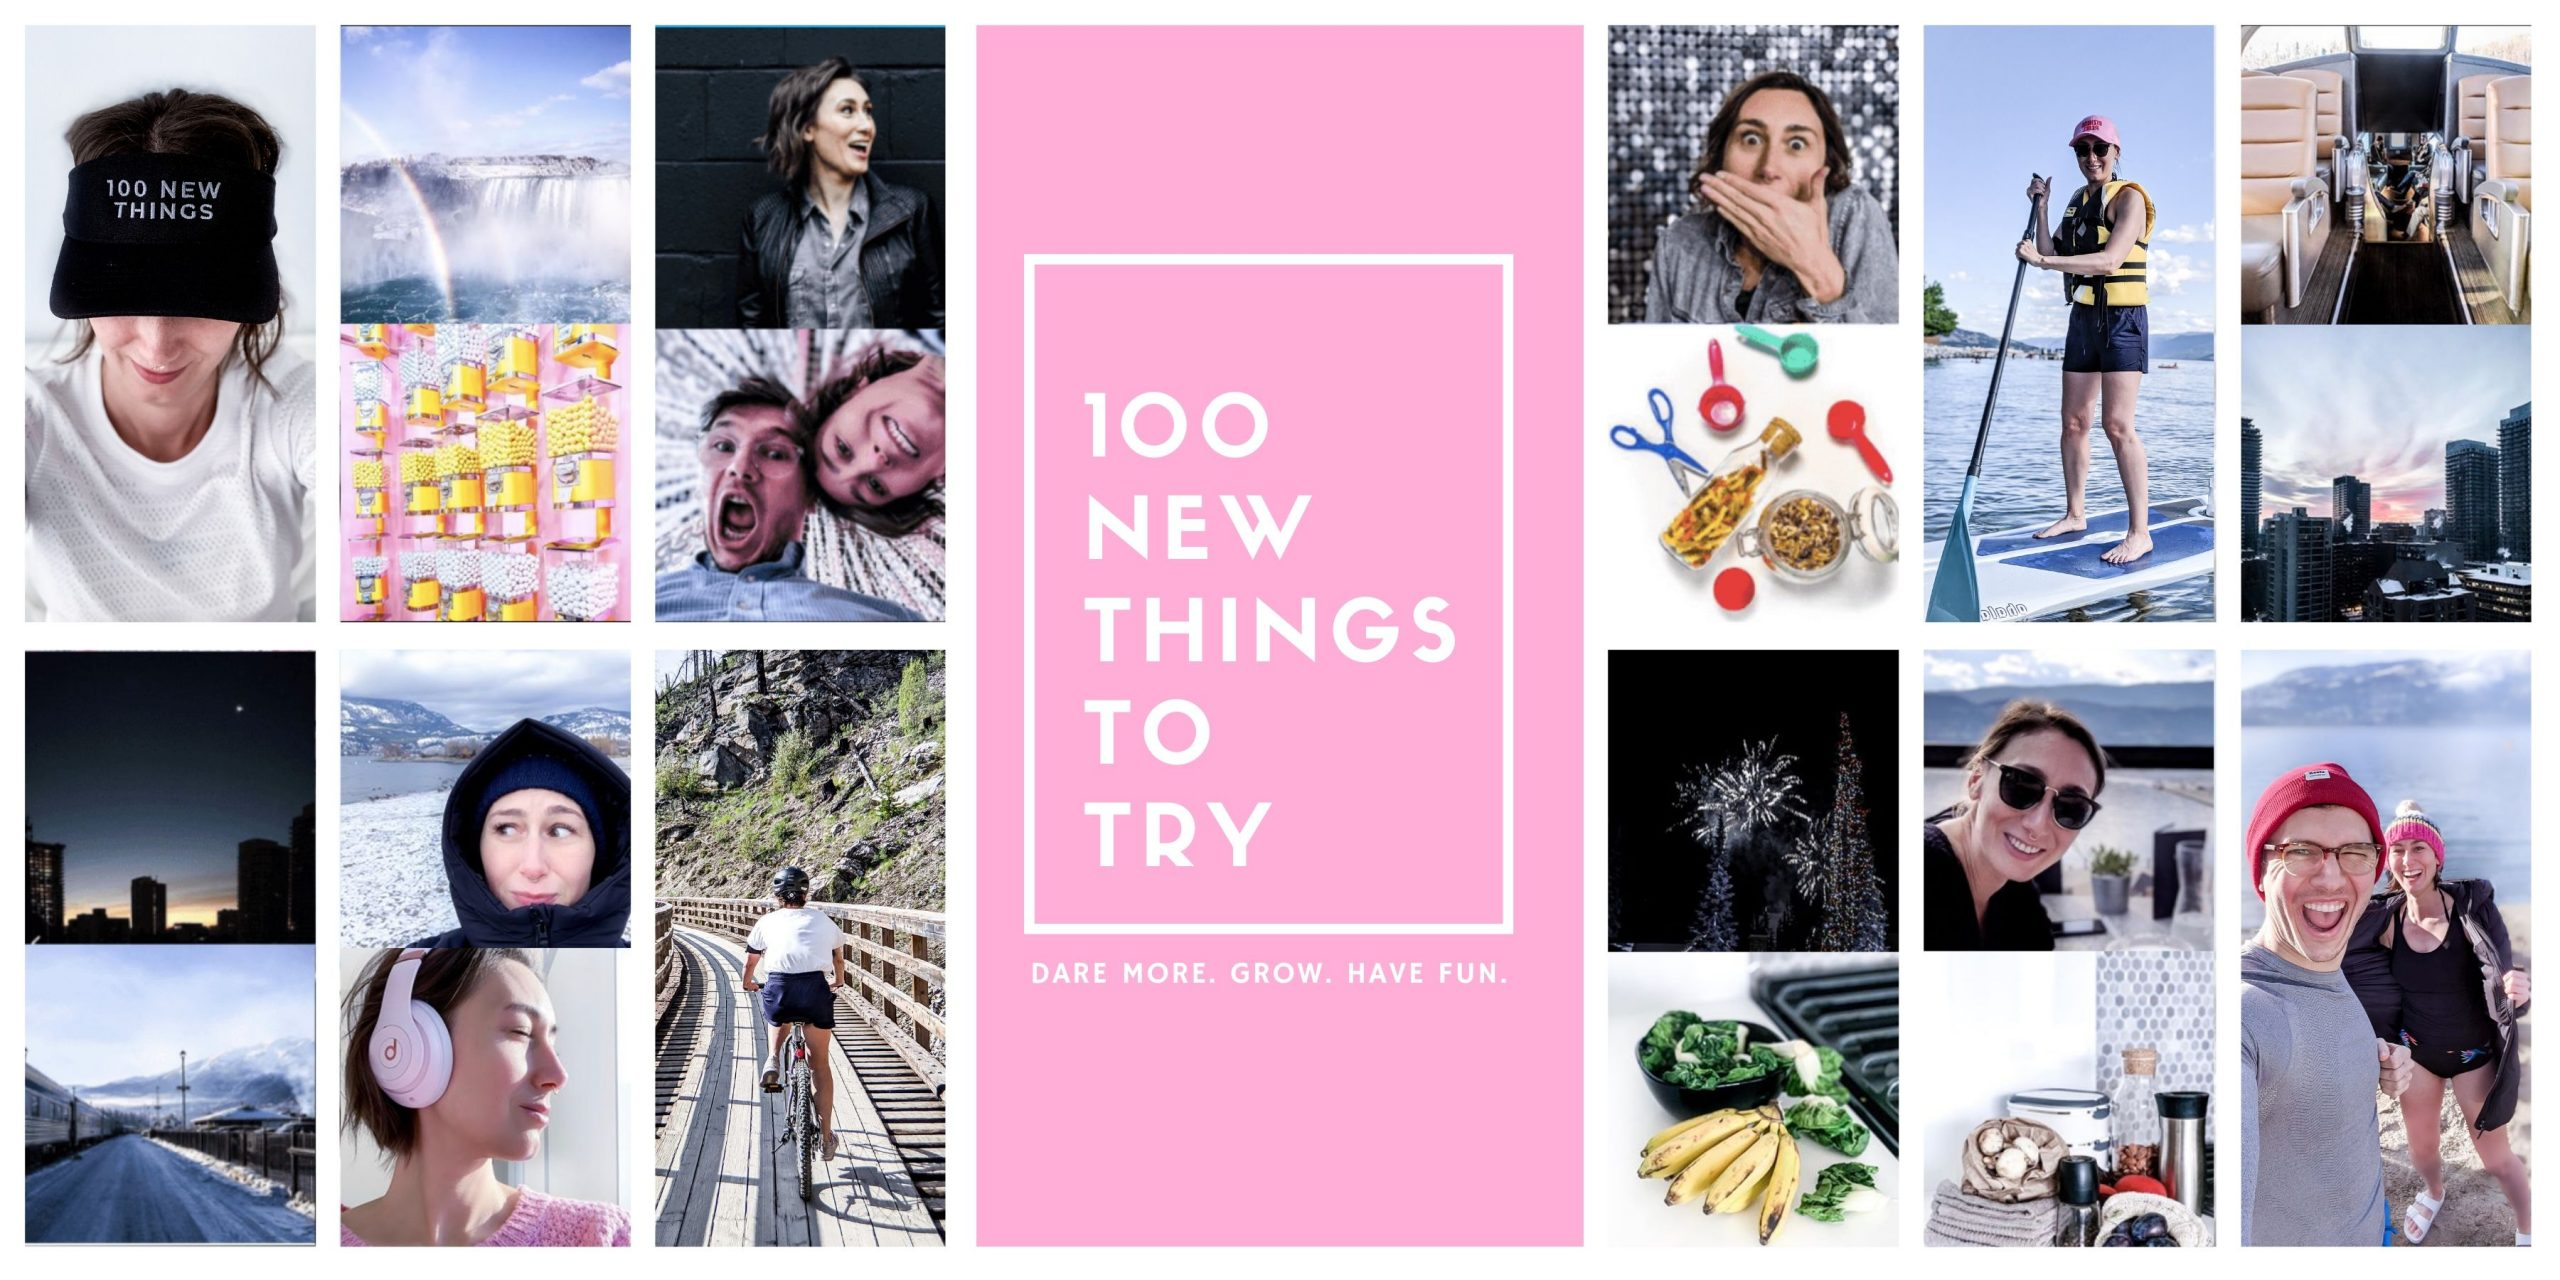 100 New Things To Try